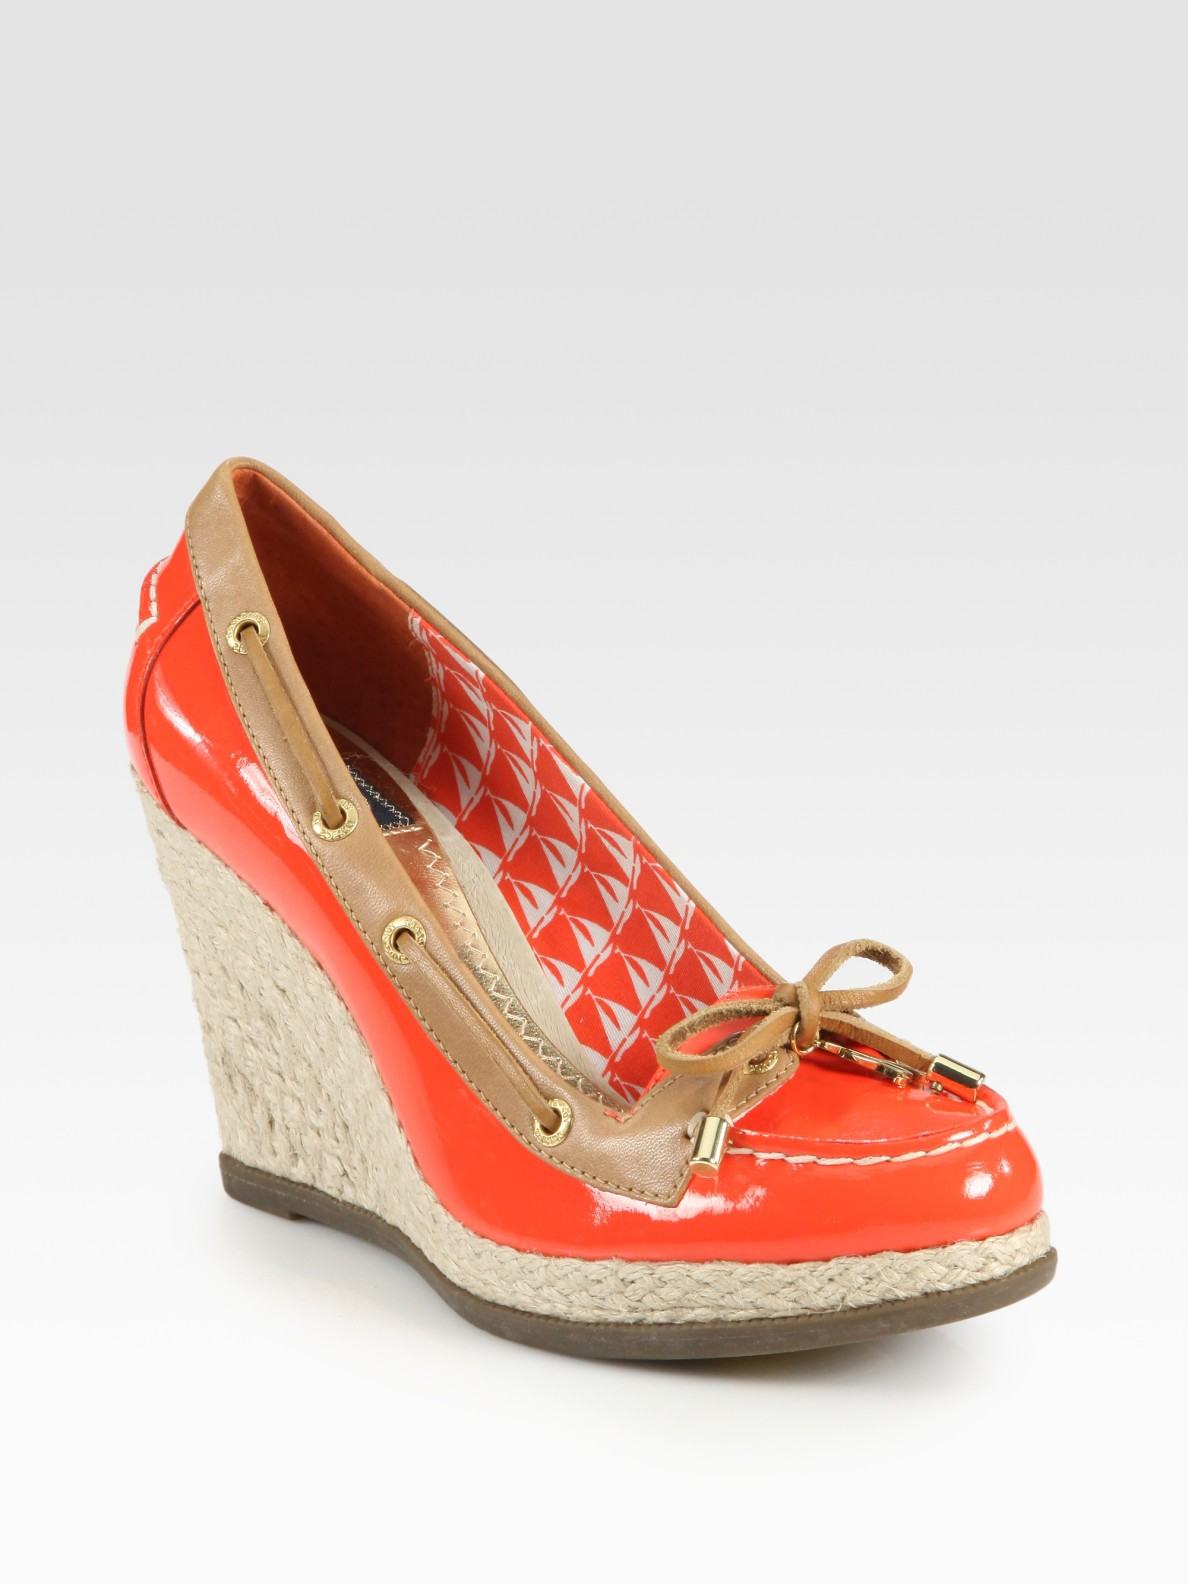 milly leather and patent leather espadrille wedge boat